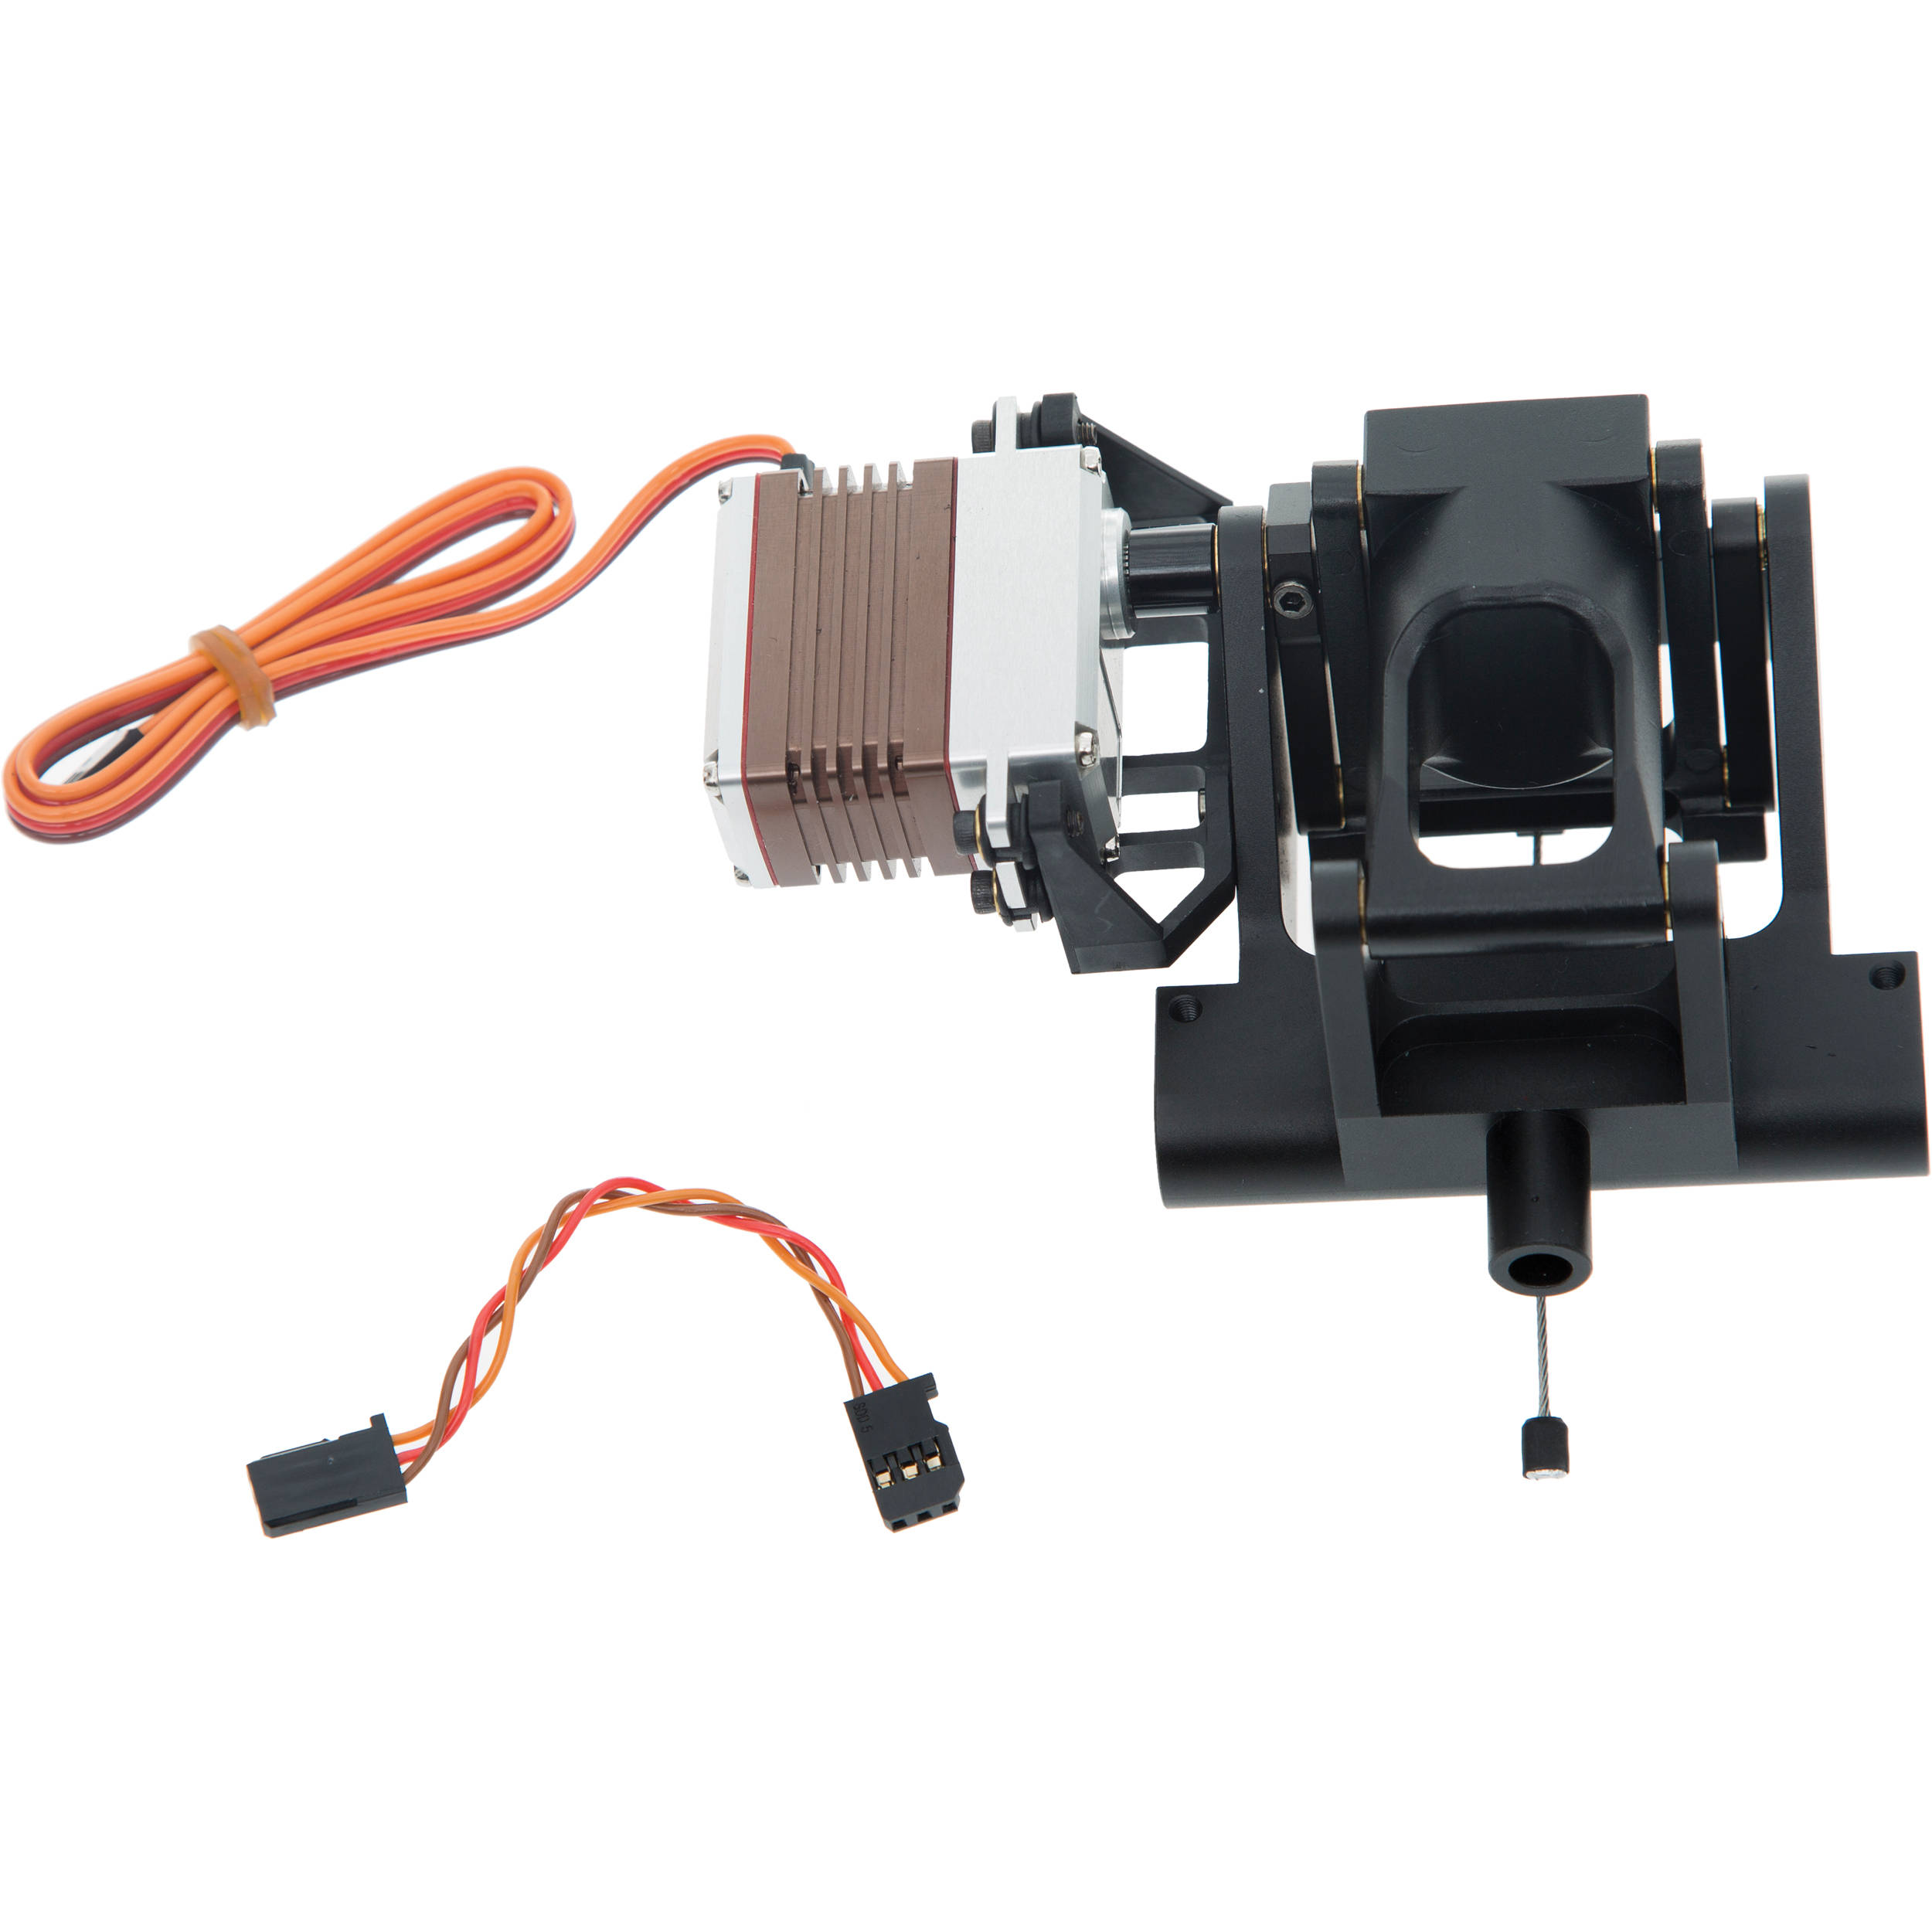 Dji Retractable Module For S900right Part 17 Cpsb000213 Bh Wiring